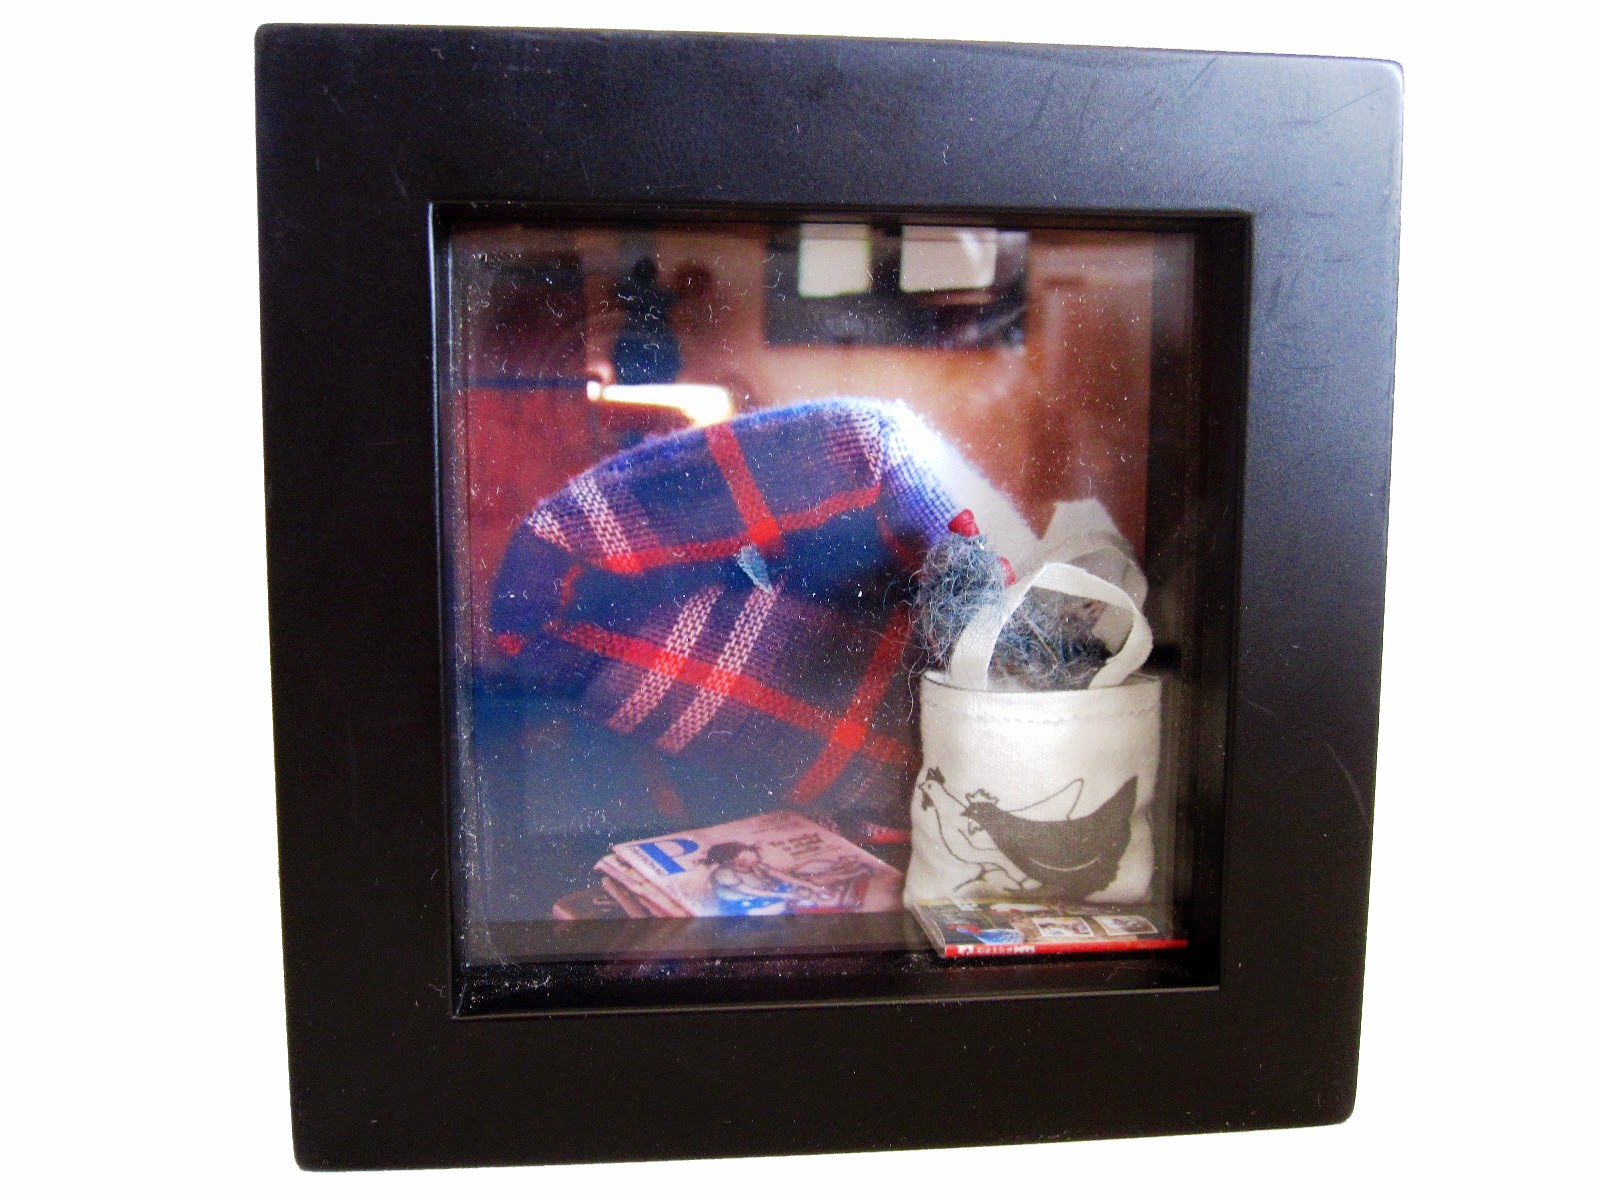 A box picture frame containing a photo of a modern miniature scene, and a miniature knitting bag and book included in front of the photo.